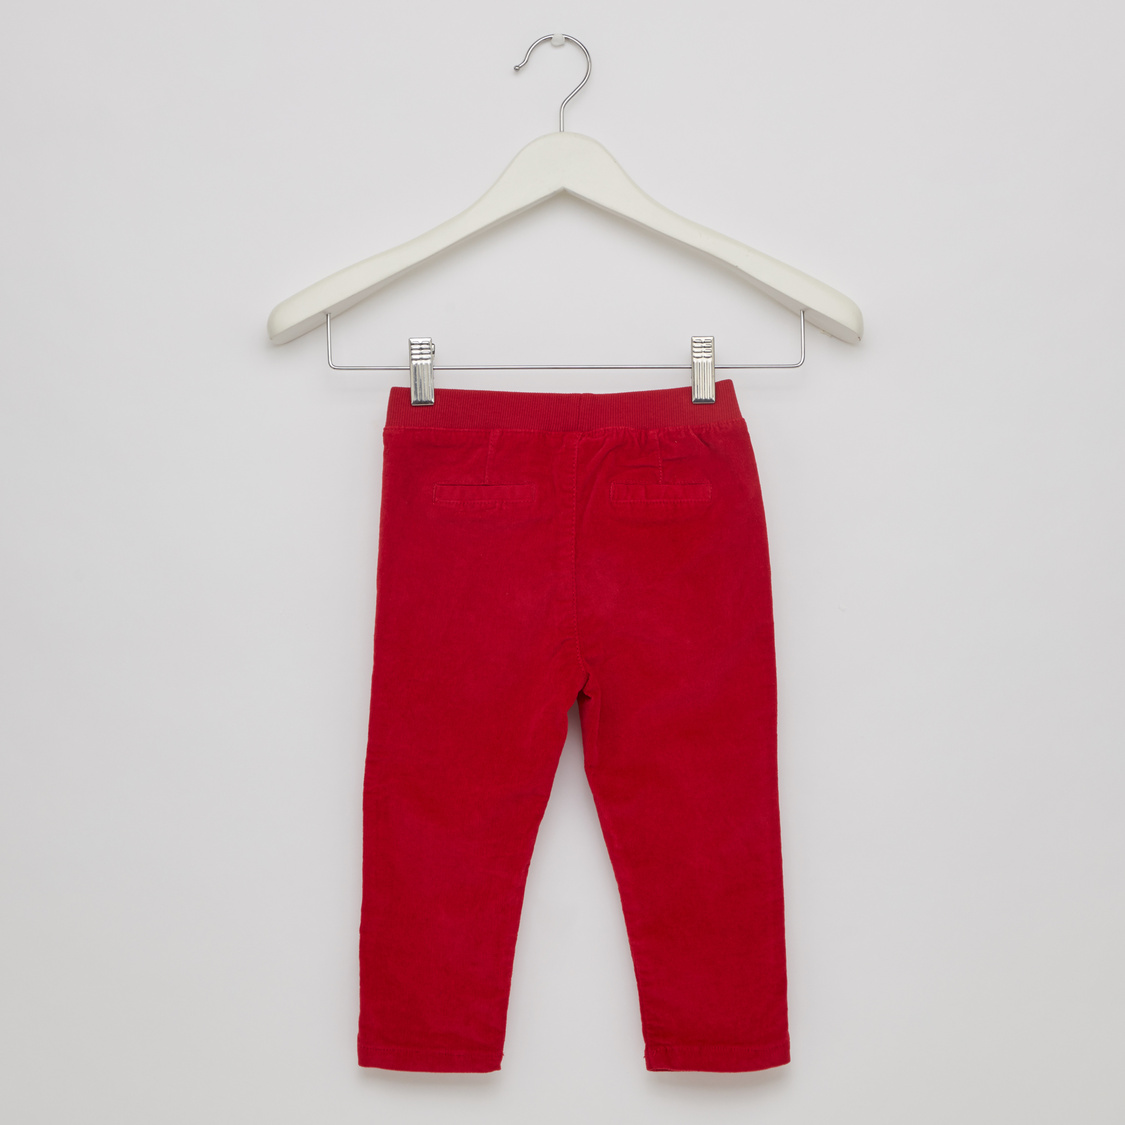 Solid Full Length Pants with Drawstring Closure and Pockets